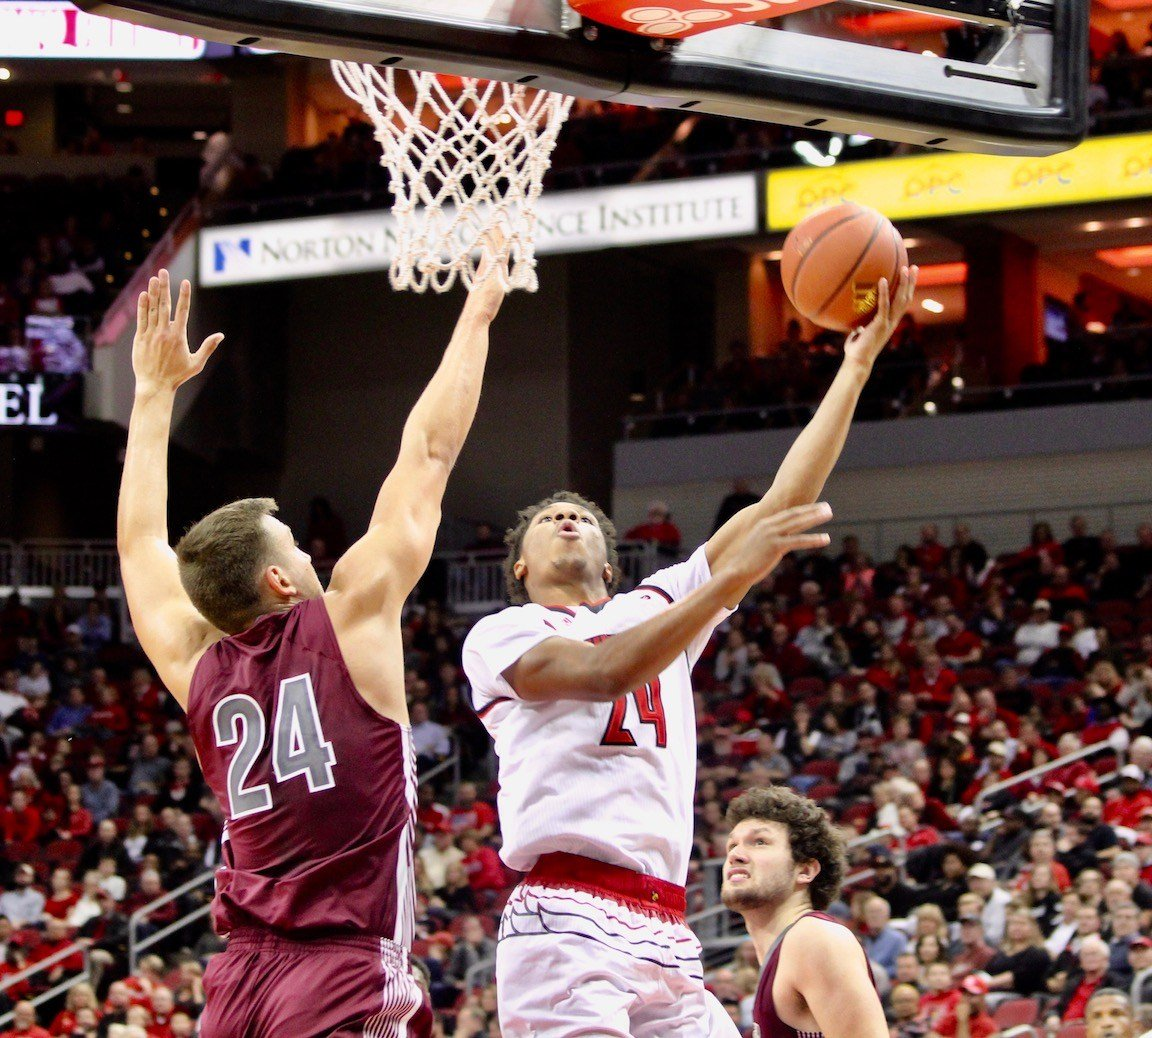 Dwayne Sutton drives for two in the second half. (WDRB photo by Eric Crawford)